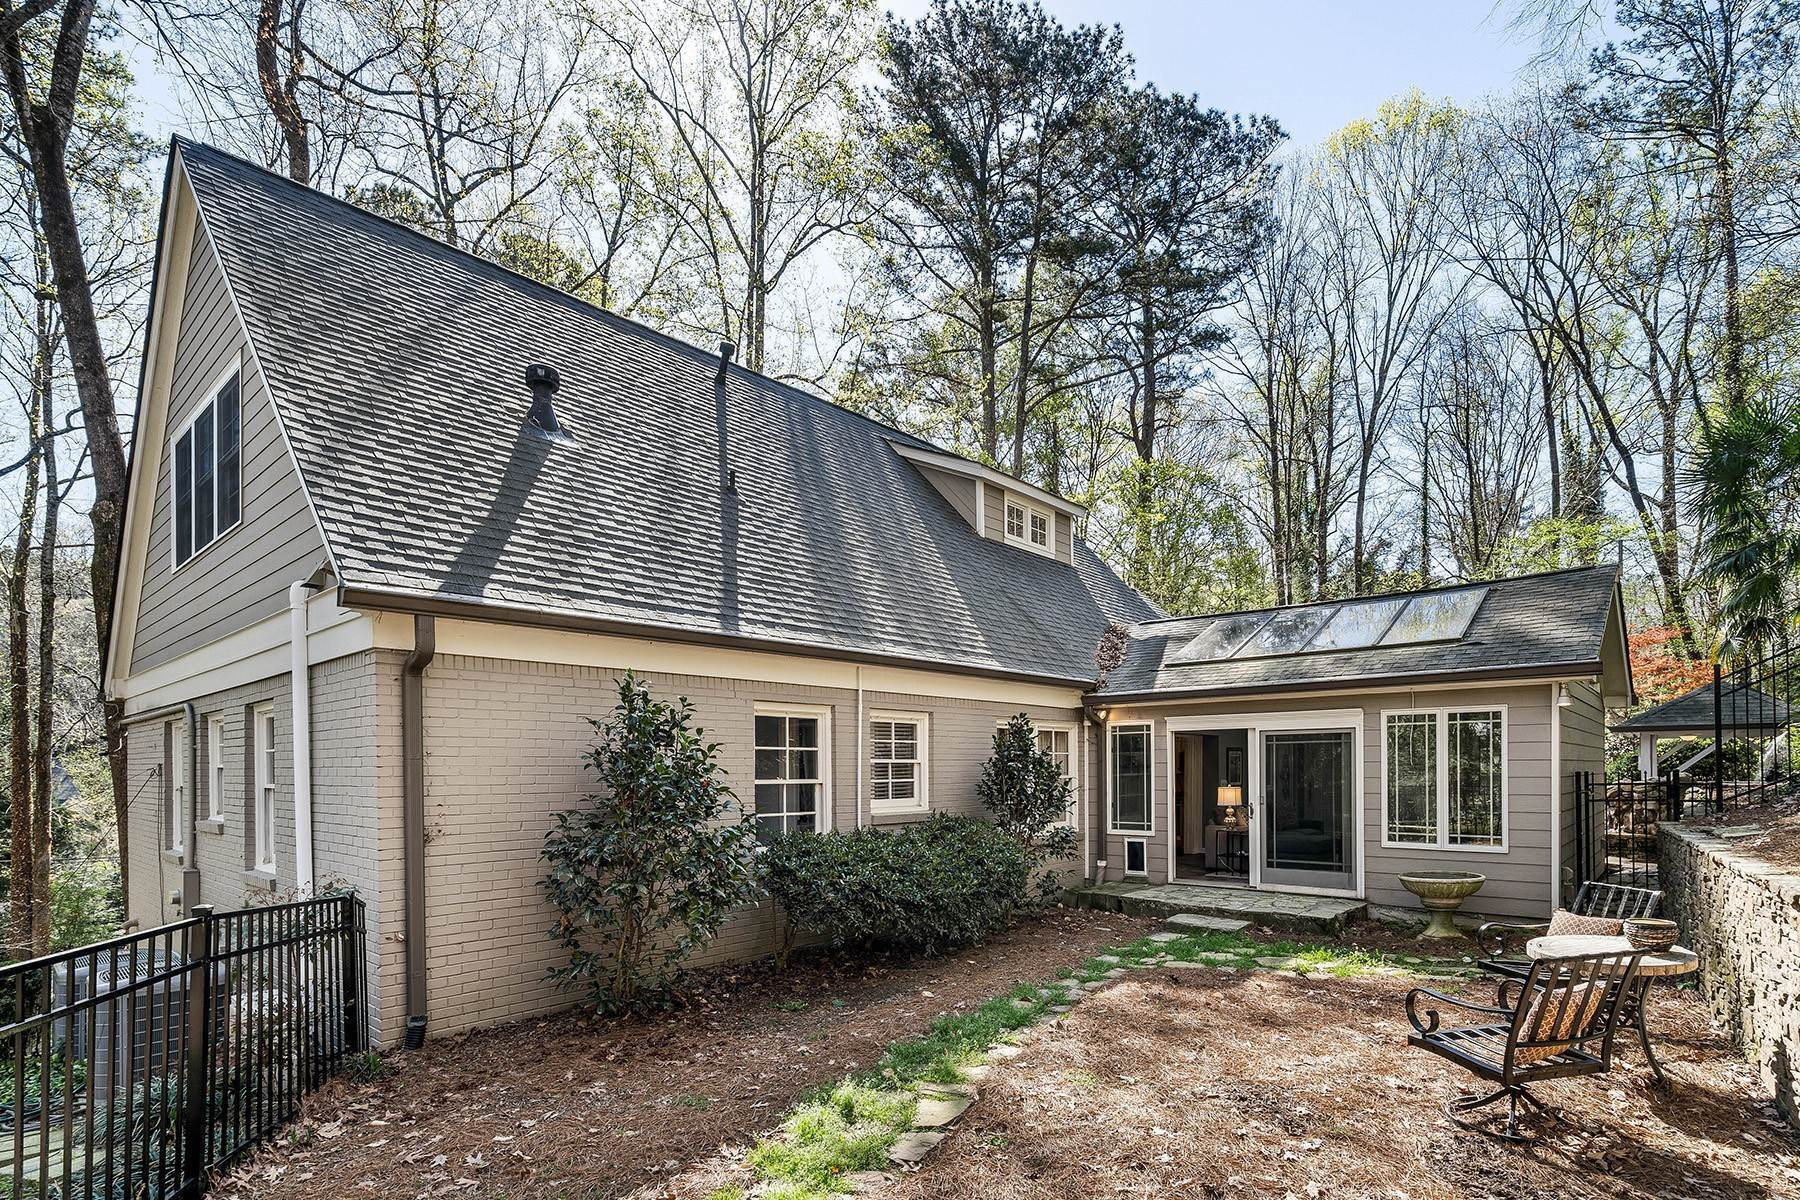 37. Single Family Homes for Sale at Fabulous Updated and Expanded Home Near Chastain Park 4944 Carol Lane Atlanta, Georgia 30327 United States